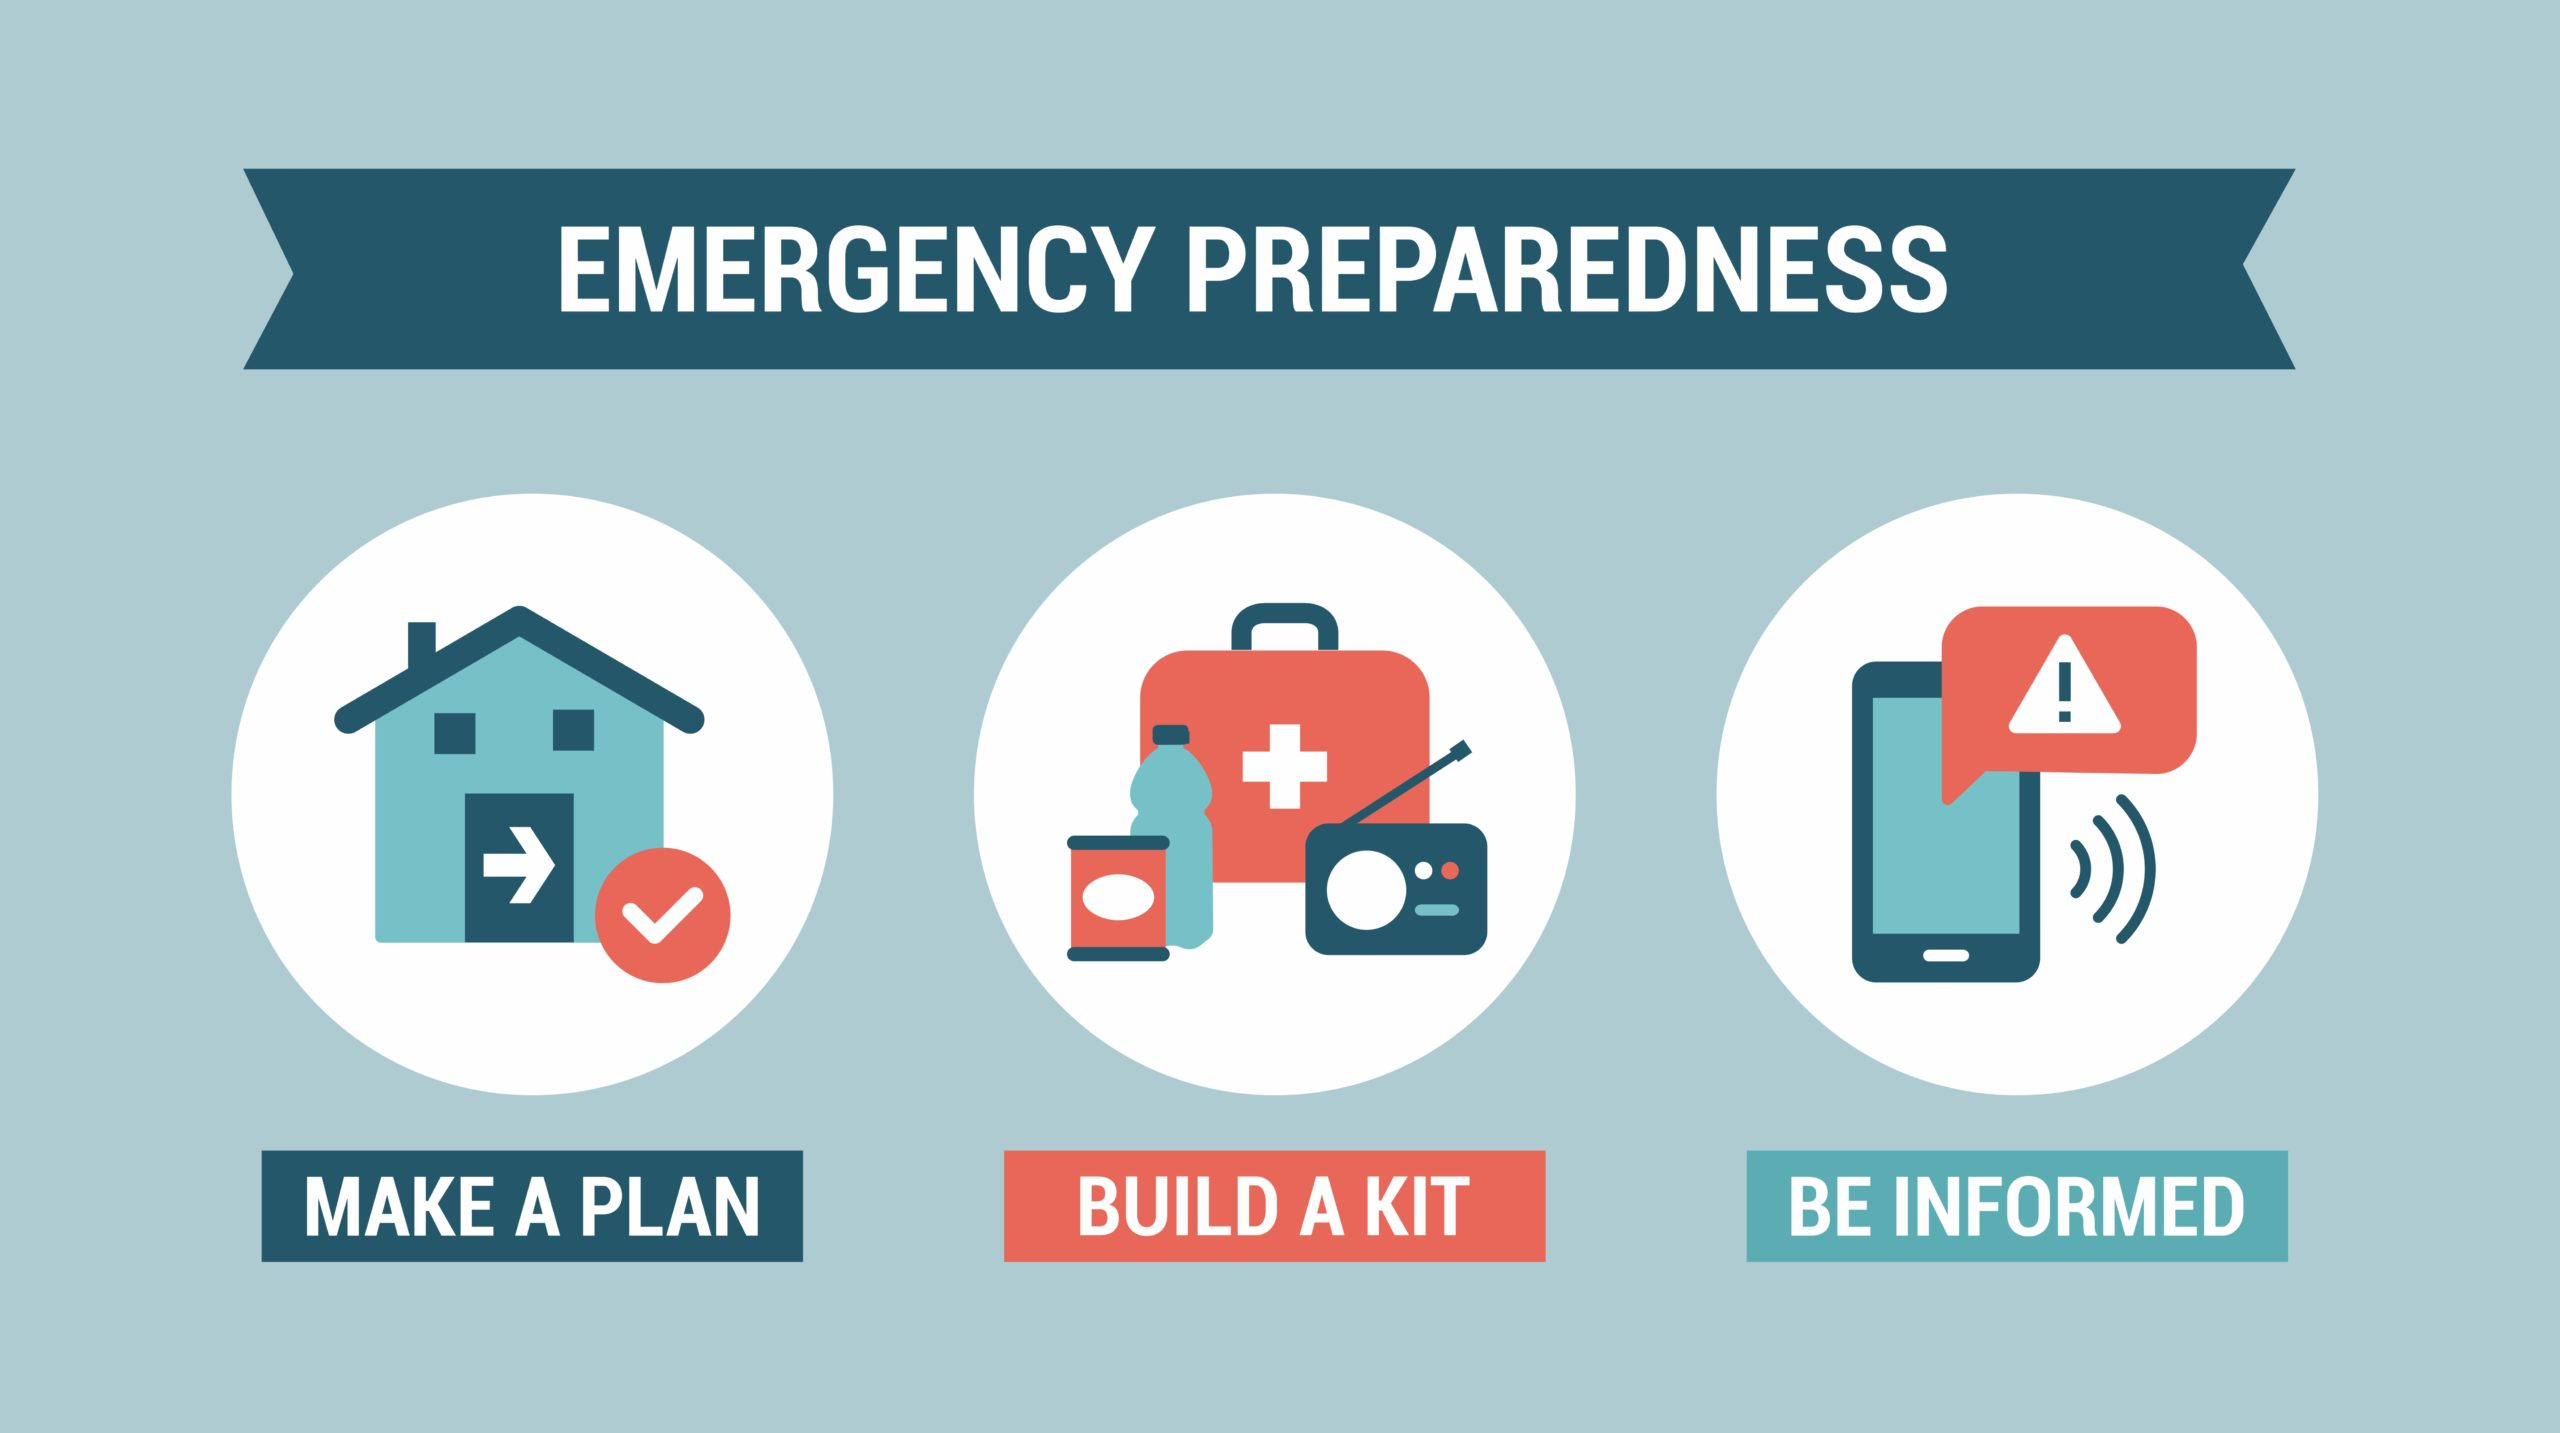 """An image with a banner reading """"Emergency Preparedness."""" There are three images below the banner stating """"Make a Plan,"""" """"Build a Kit,"""" and """"Be Informed."""""""